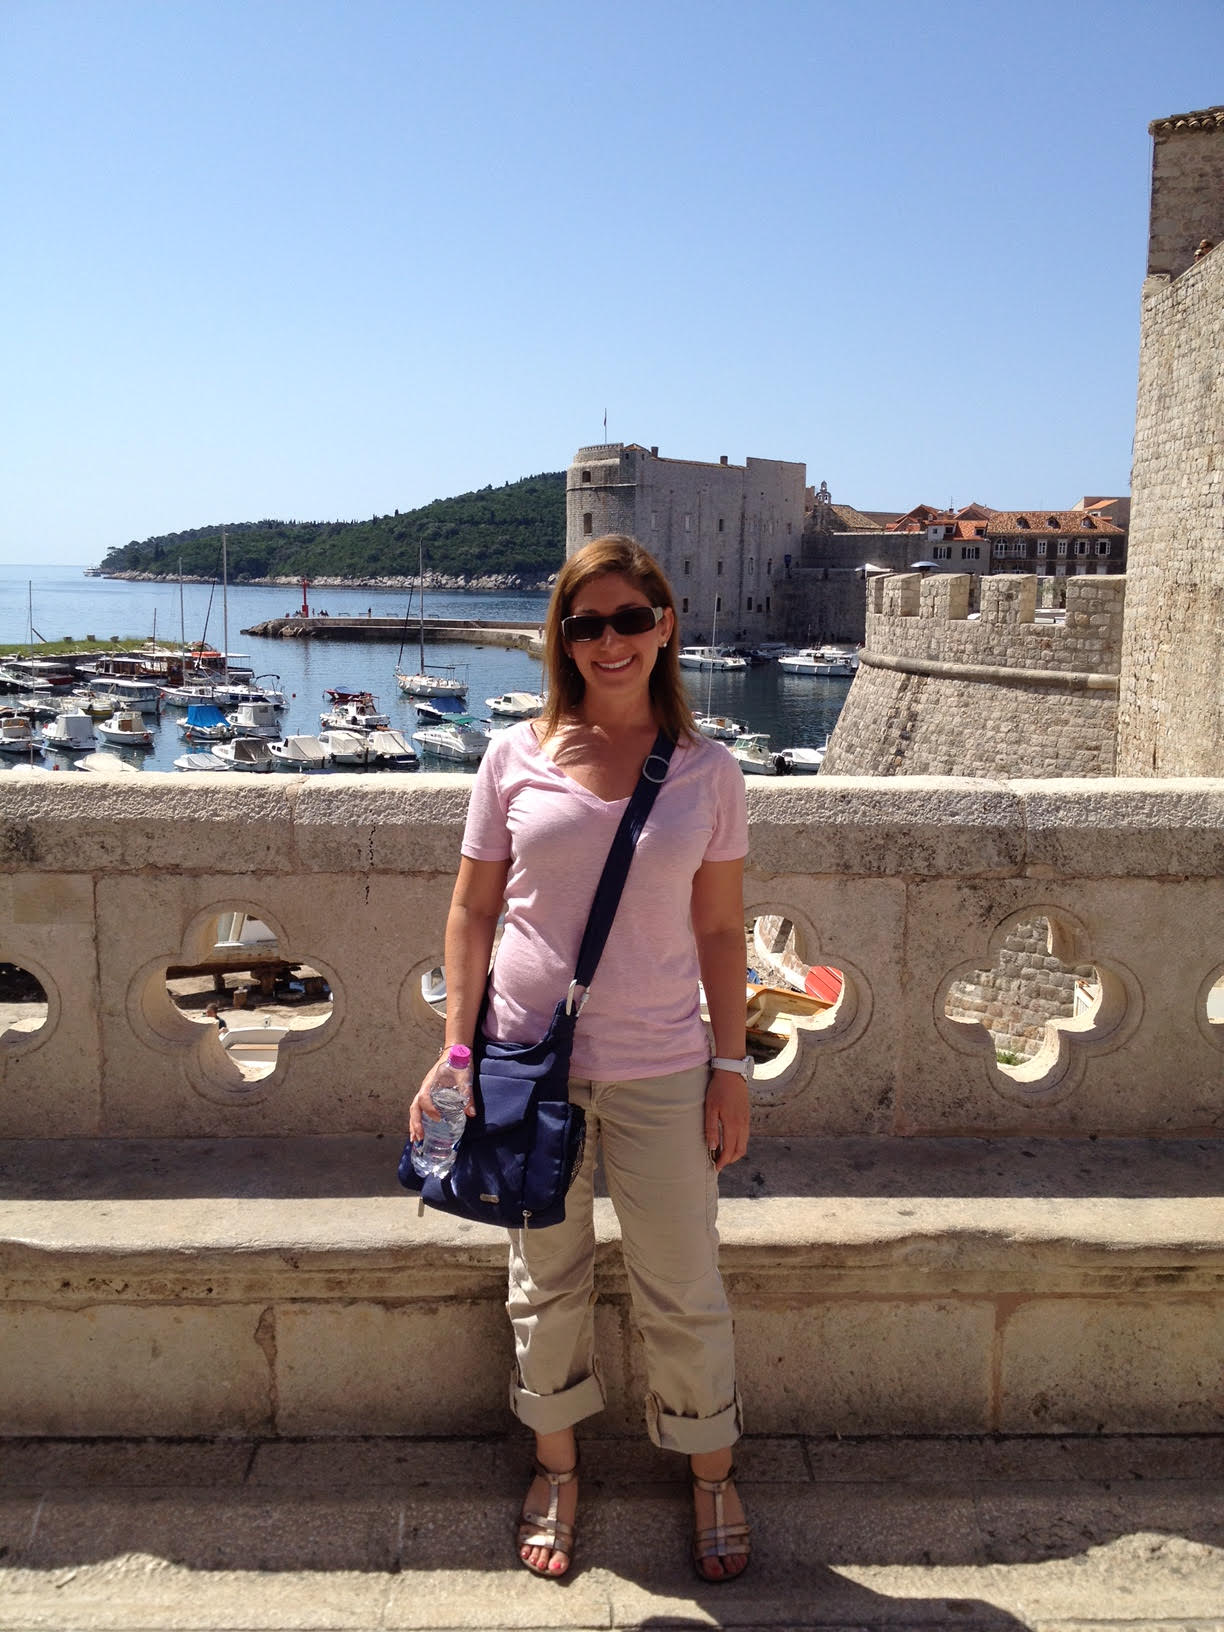 Jill in Dubrovnik, Croatia